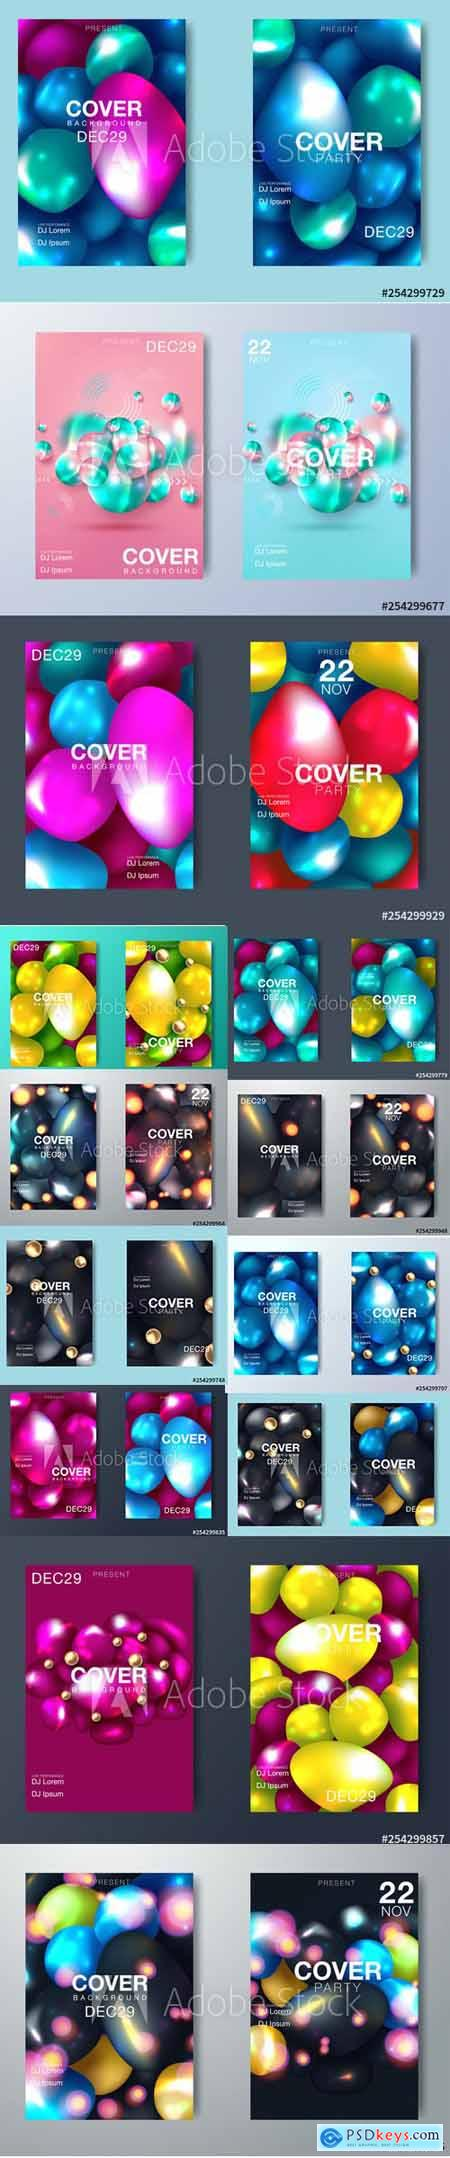 Vector Set - Modern Abstract Party Posters and Gradient Backgrounds